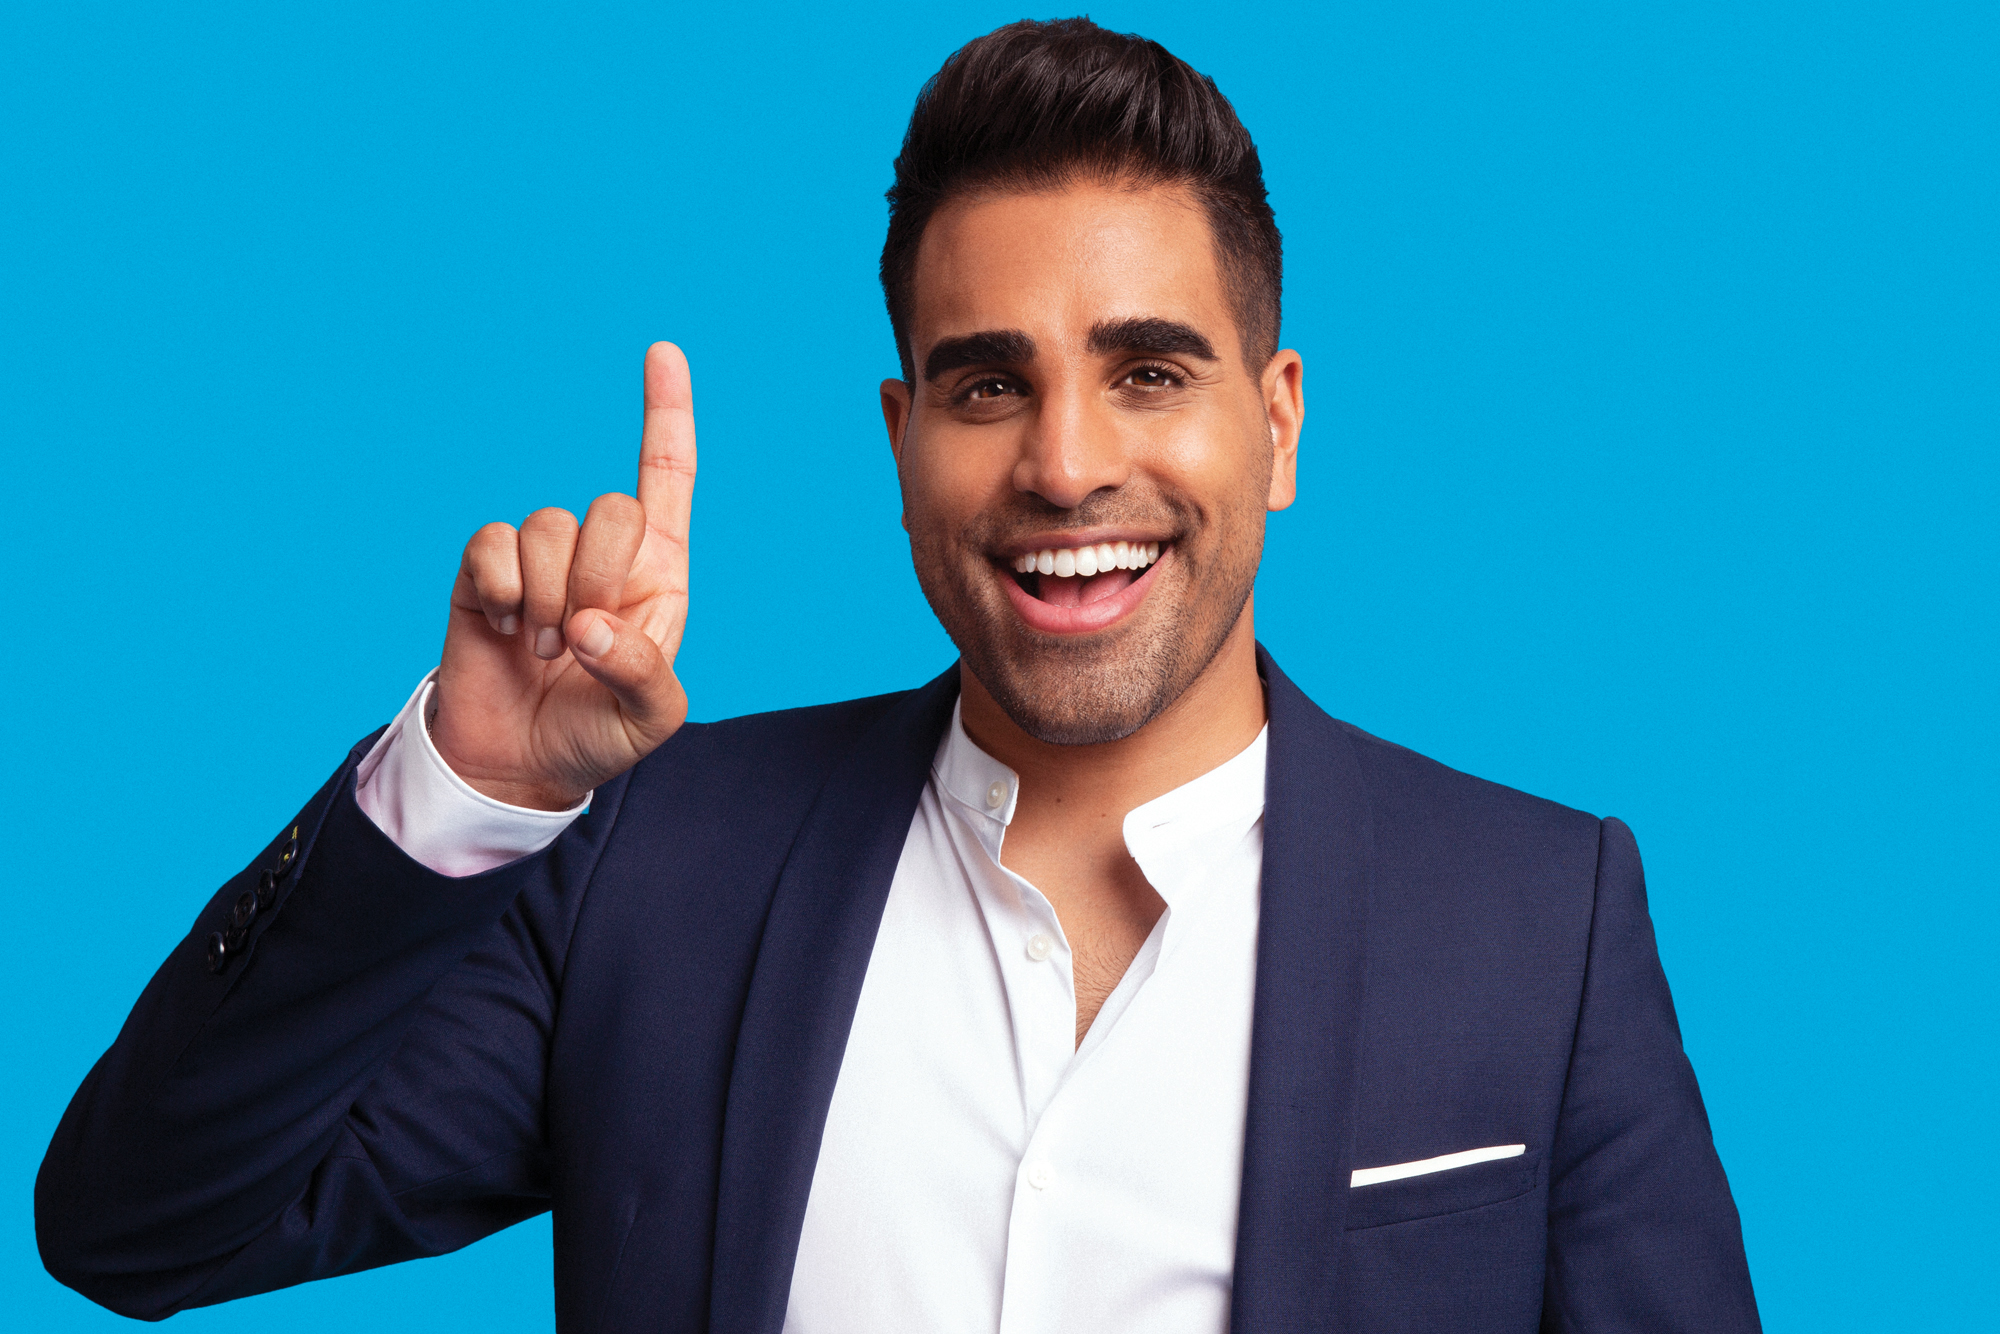 Dr Ranj holding his finger up